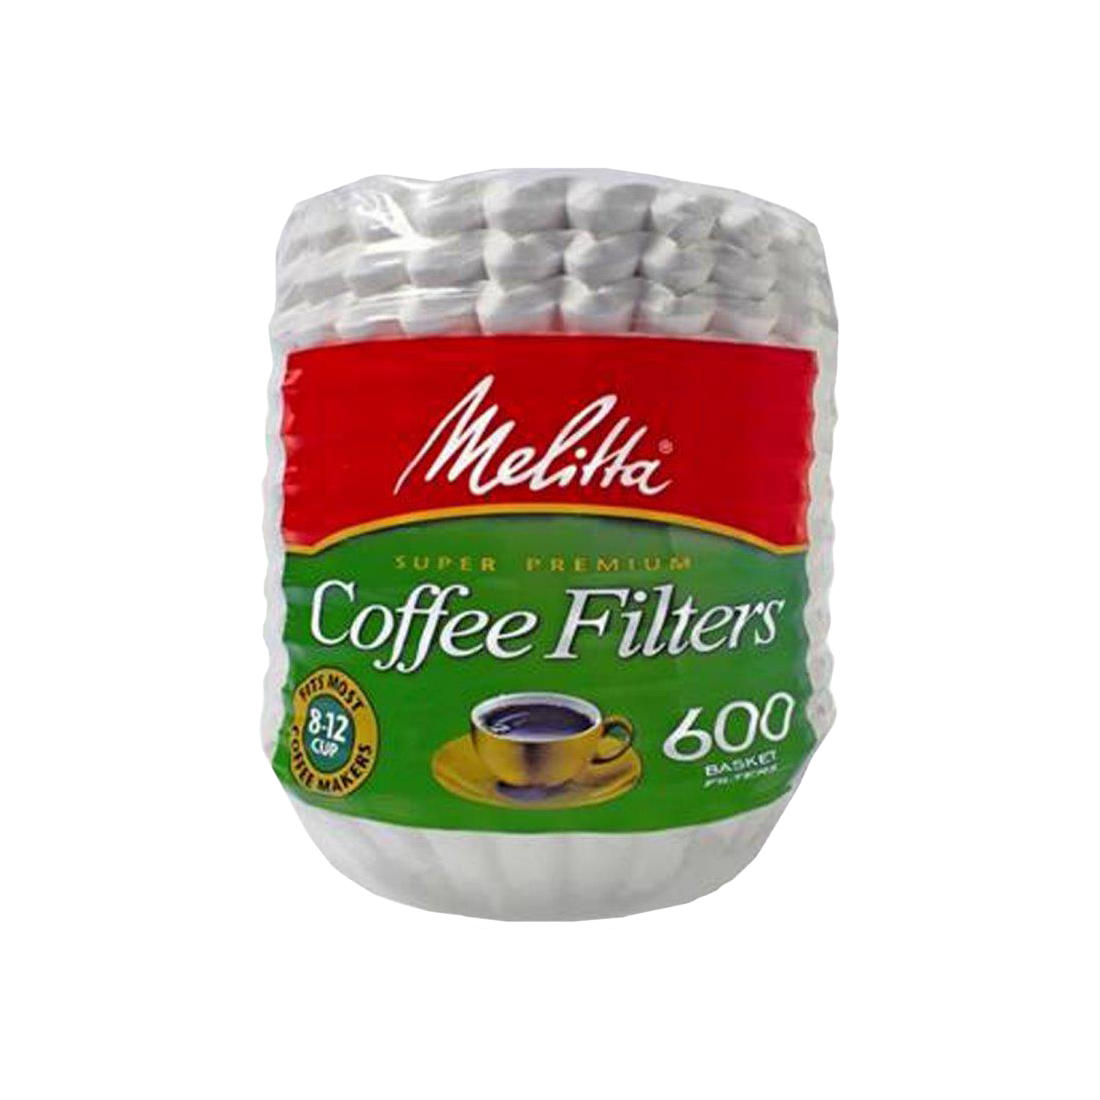 Coupons for Stores Related to melitta.com